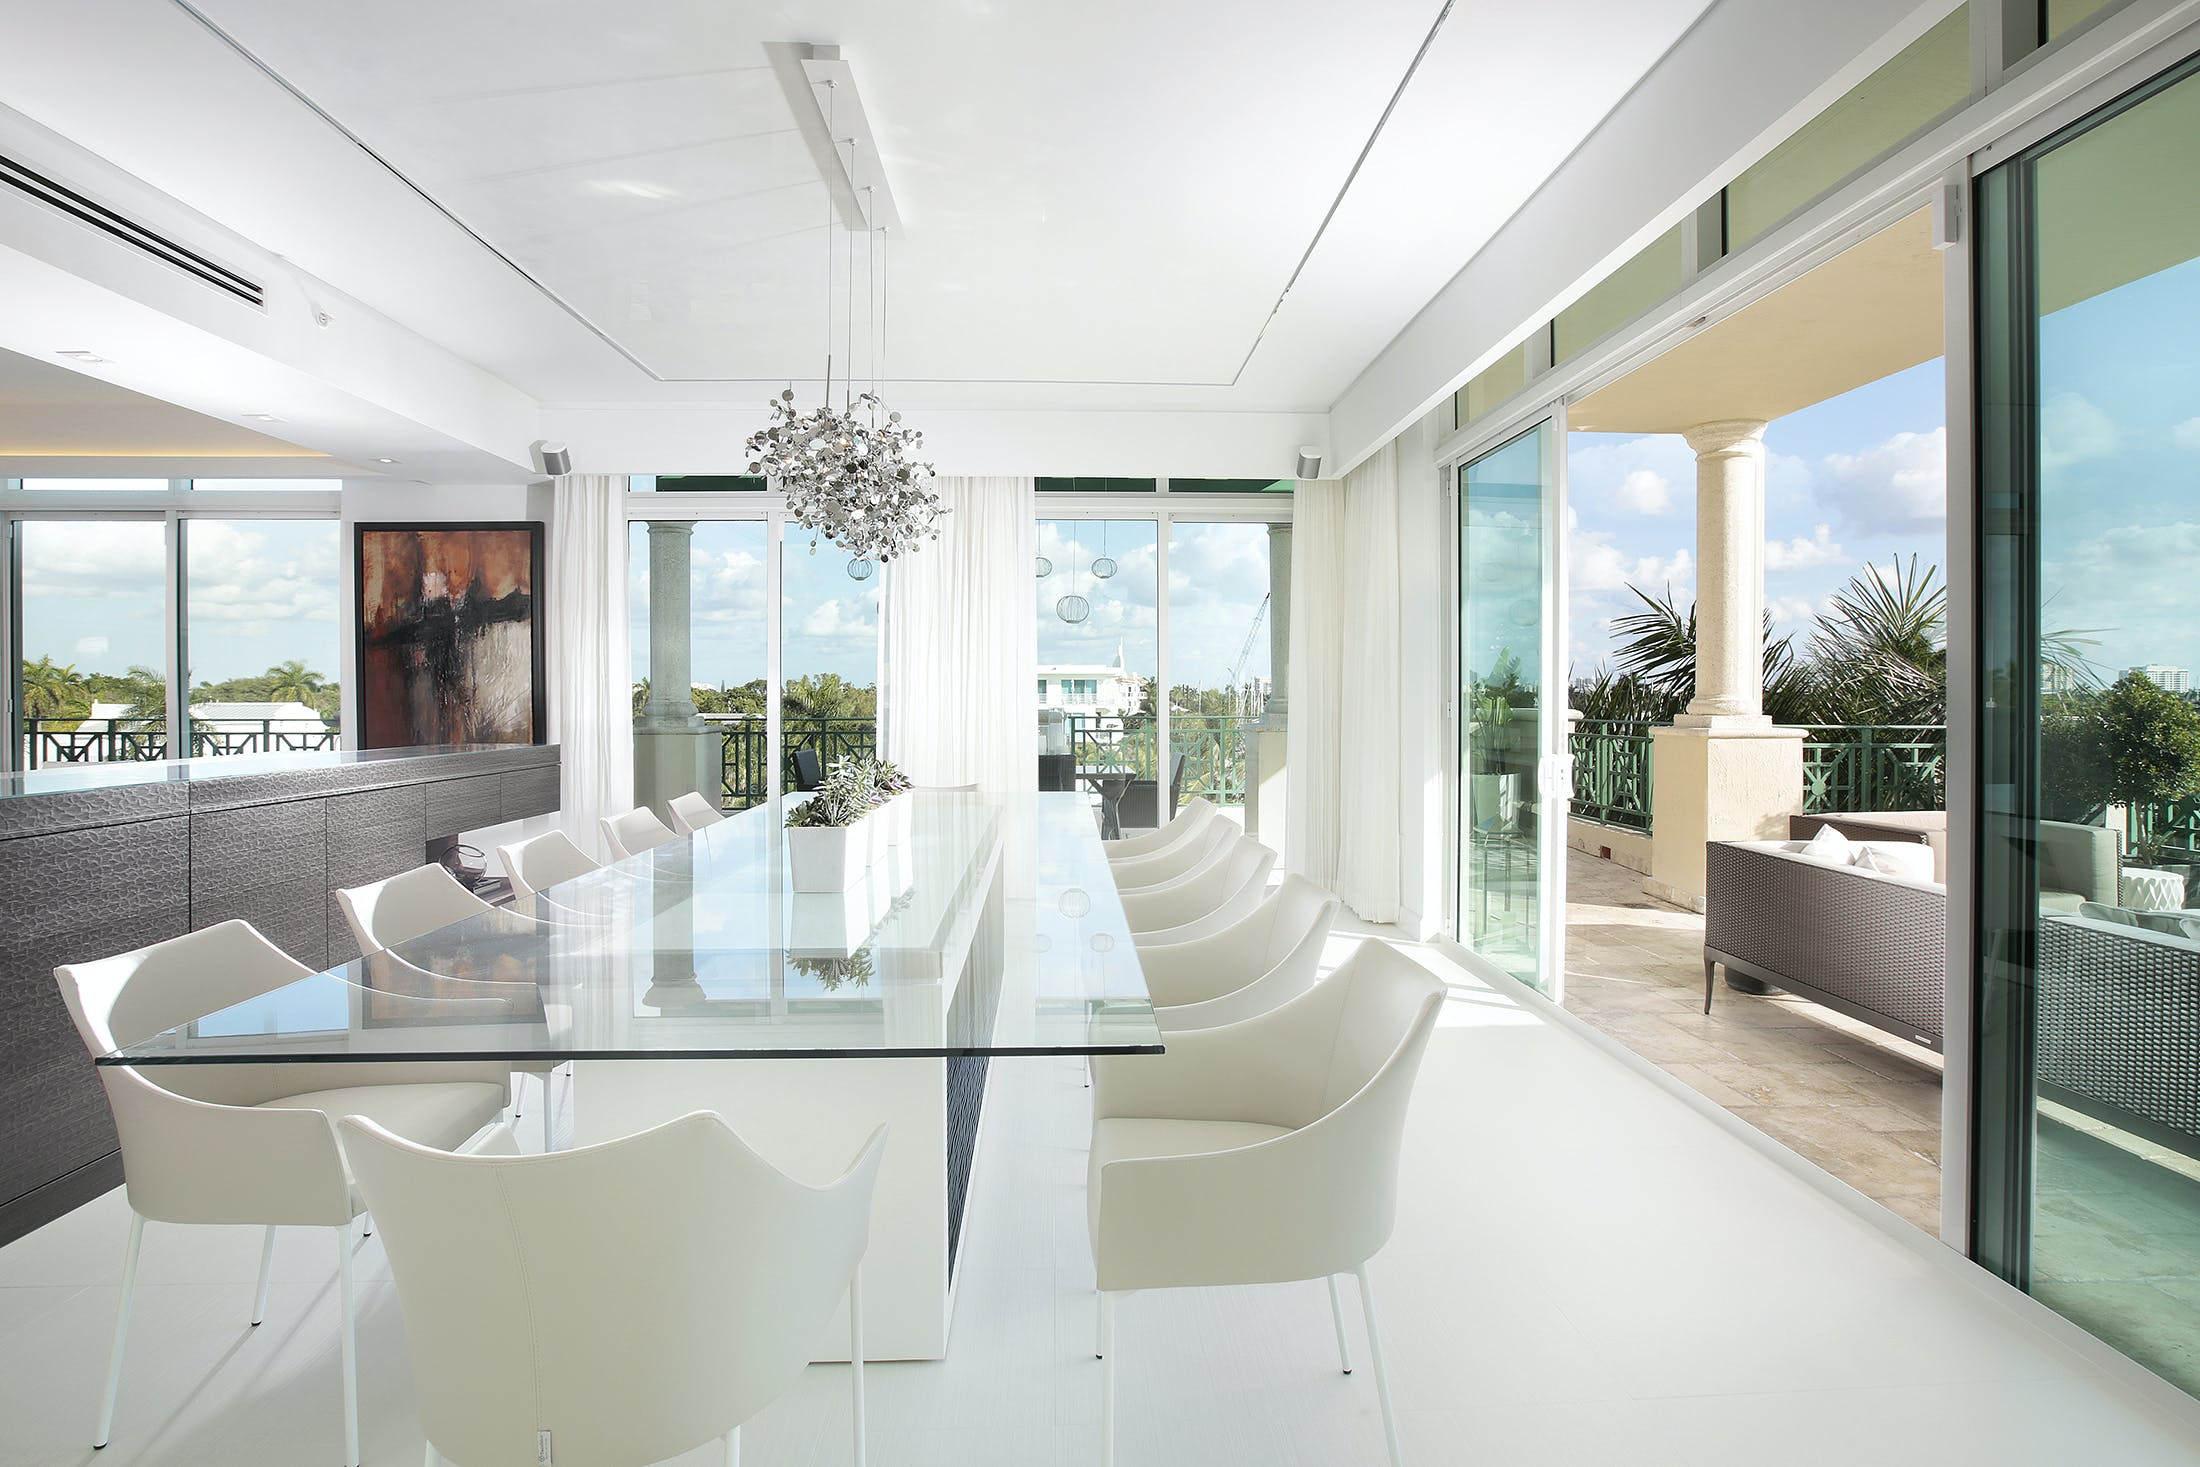 waterfront penthouse dkor interiors inc archinect